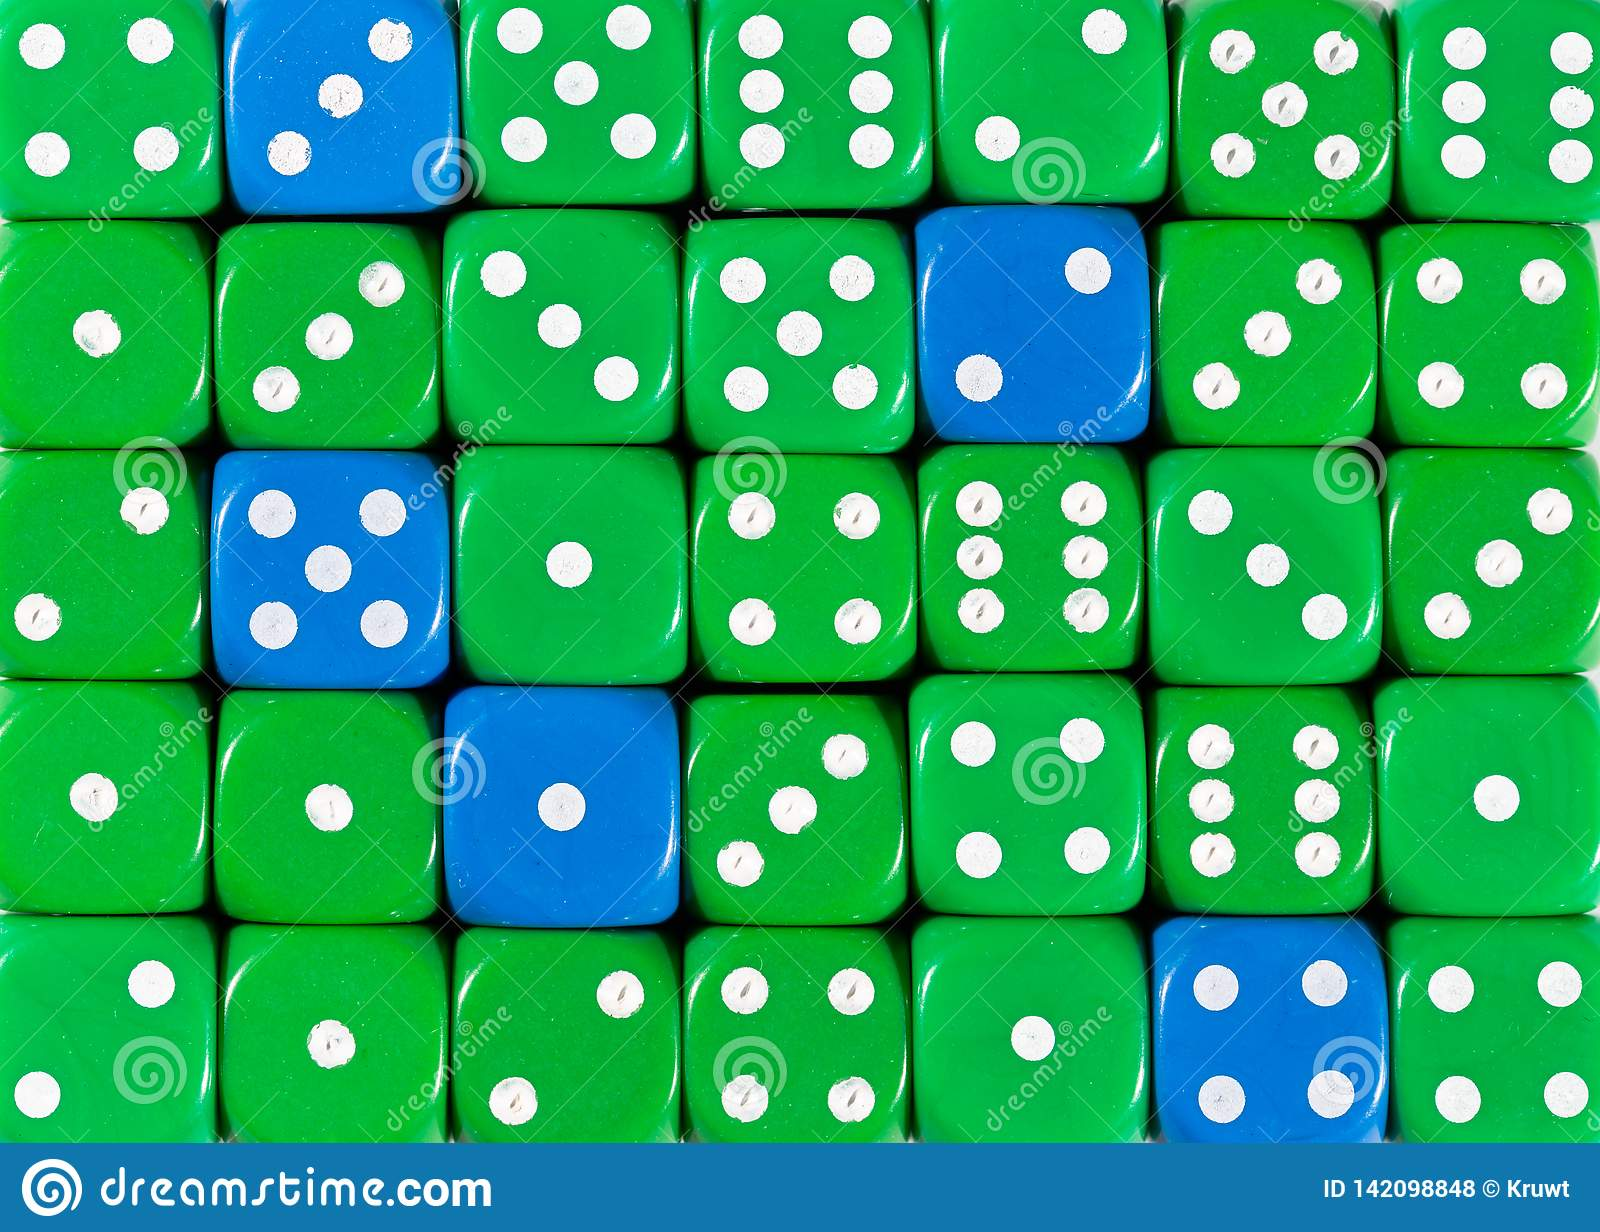 Background of random ordered green dices with five blue cubes